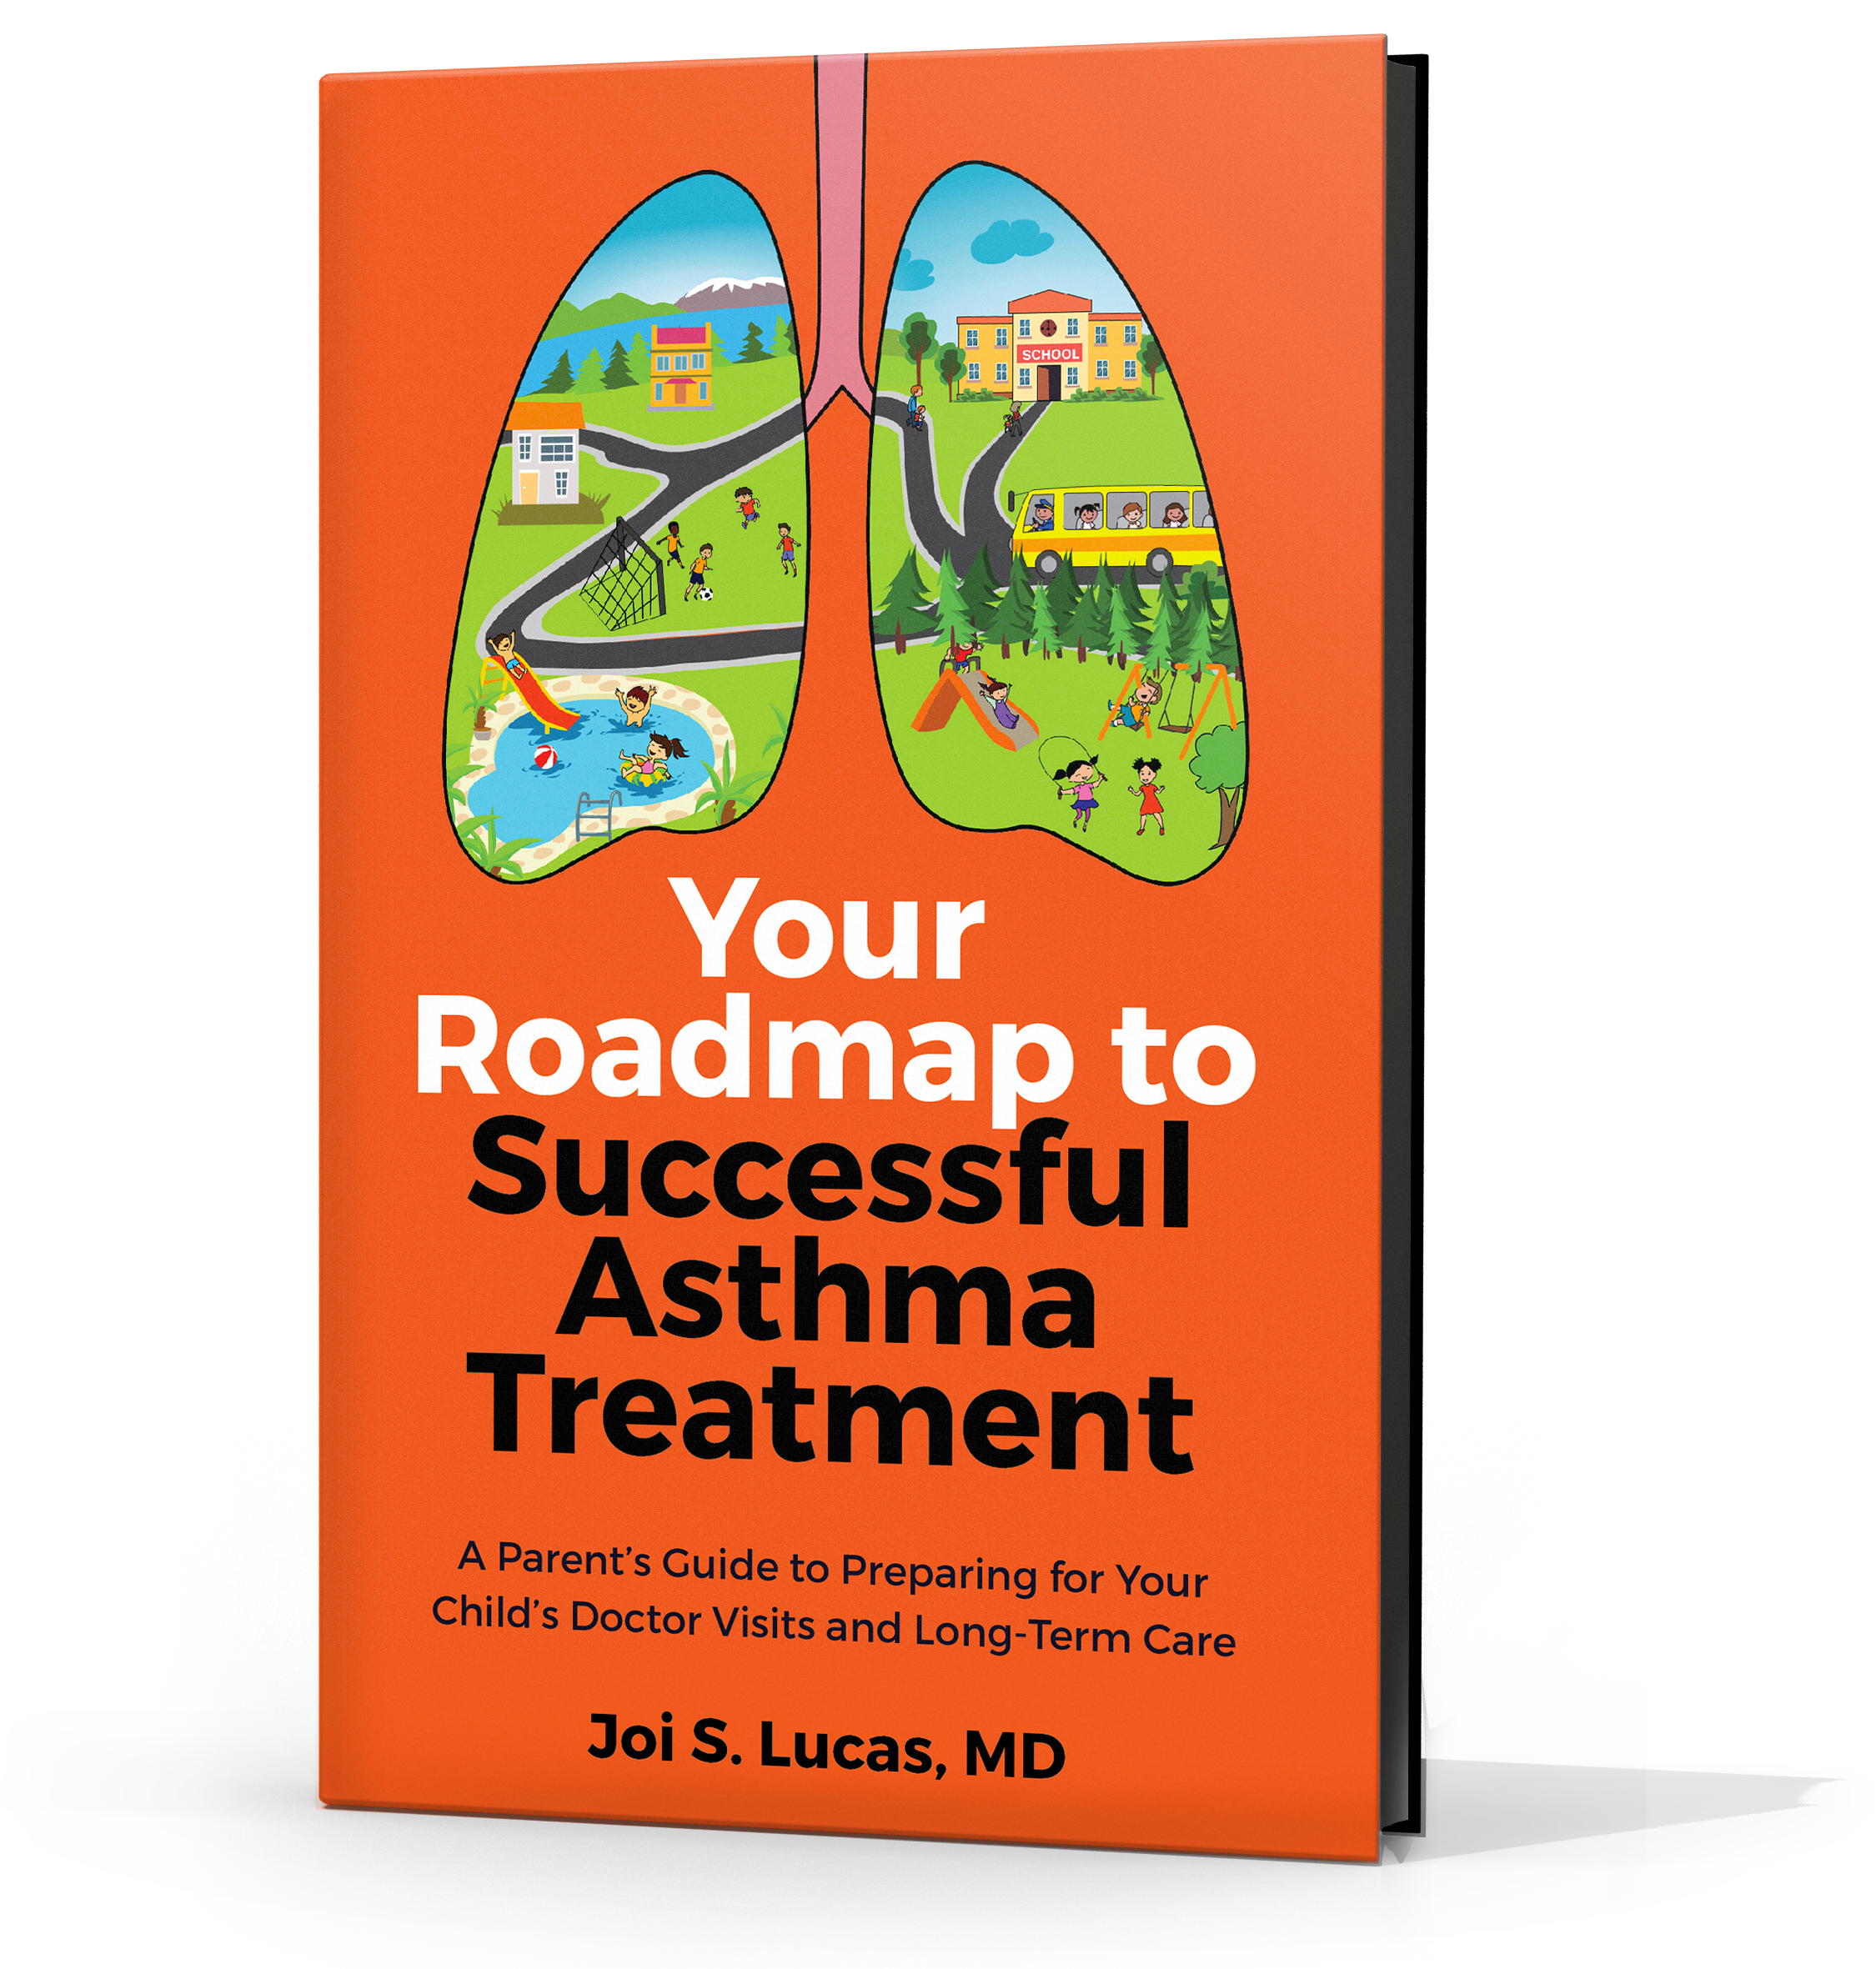 Pediatric Pulmonologist and Bestselling Author Releases Guidebook to Help Parents Improve Their Asthmatic Child's Health